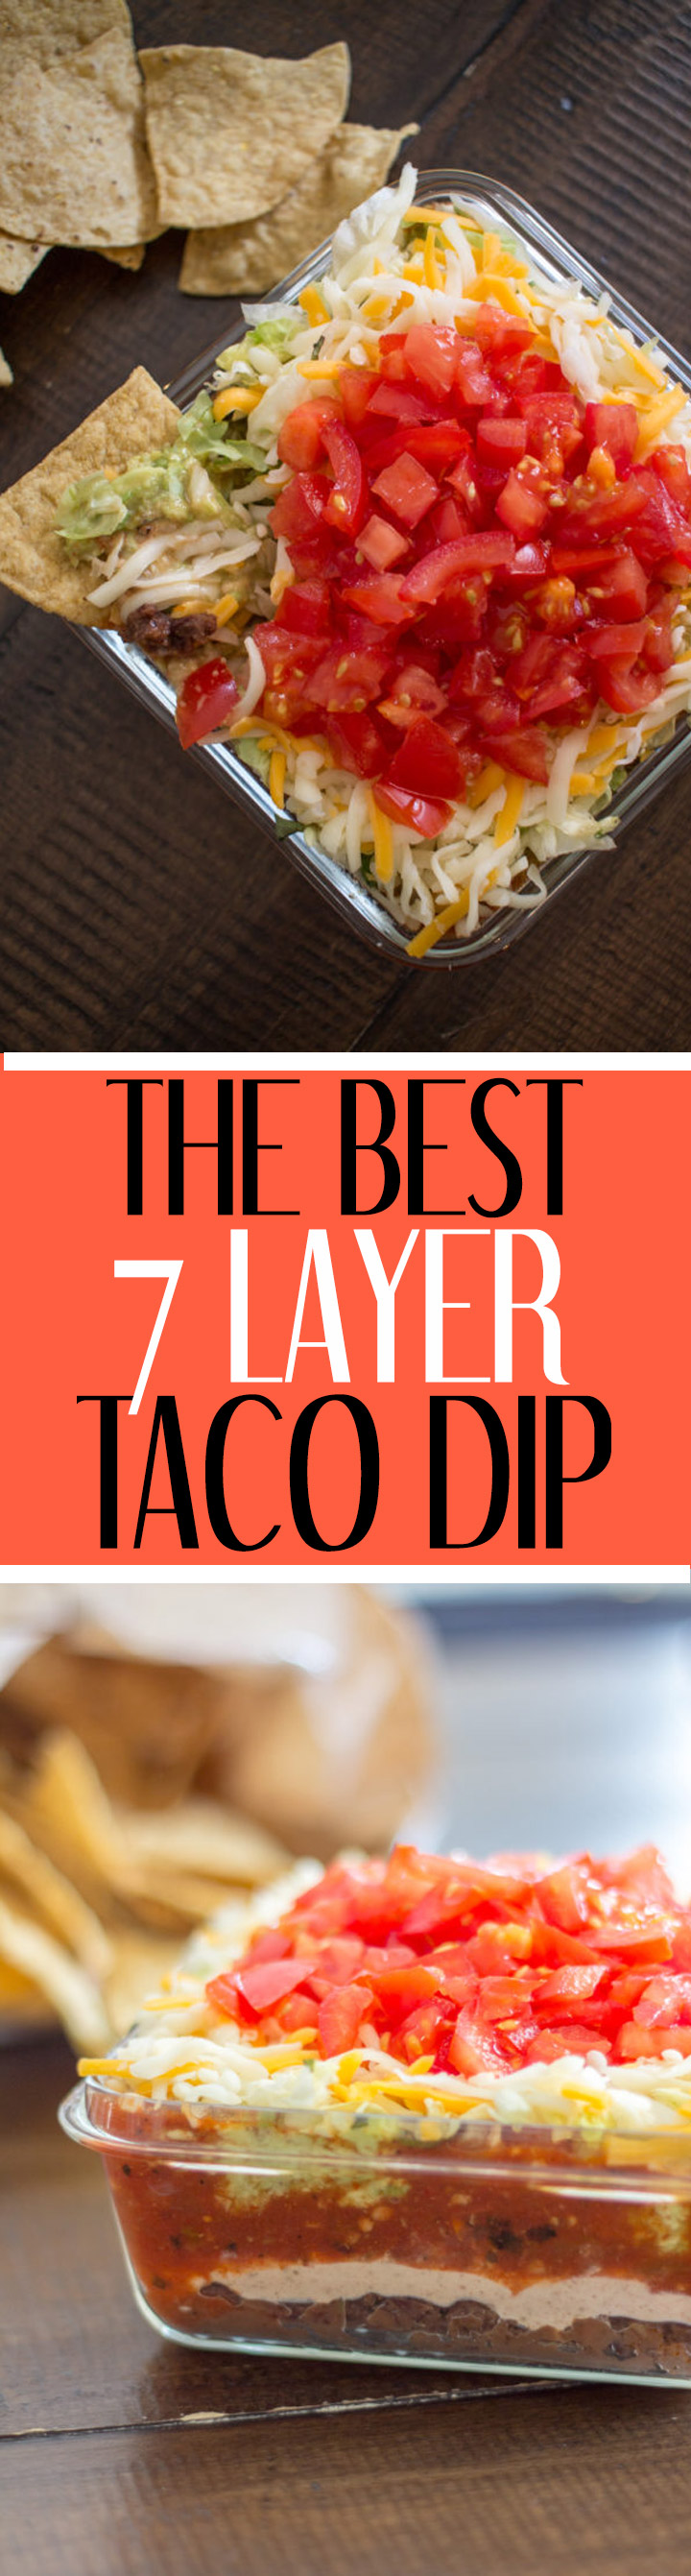 A quick and easy recipe for homemade 7 Layer Taco Dip. This crowdpleasing appetizer is sure to be a hit at your next party. This taco dip recipe requires no cooking and takes just 5 minutes to prepare!